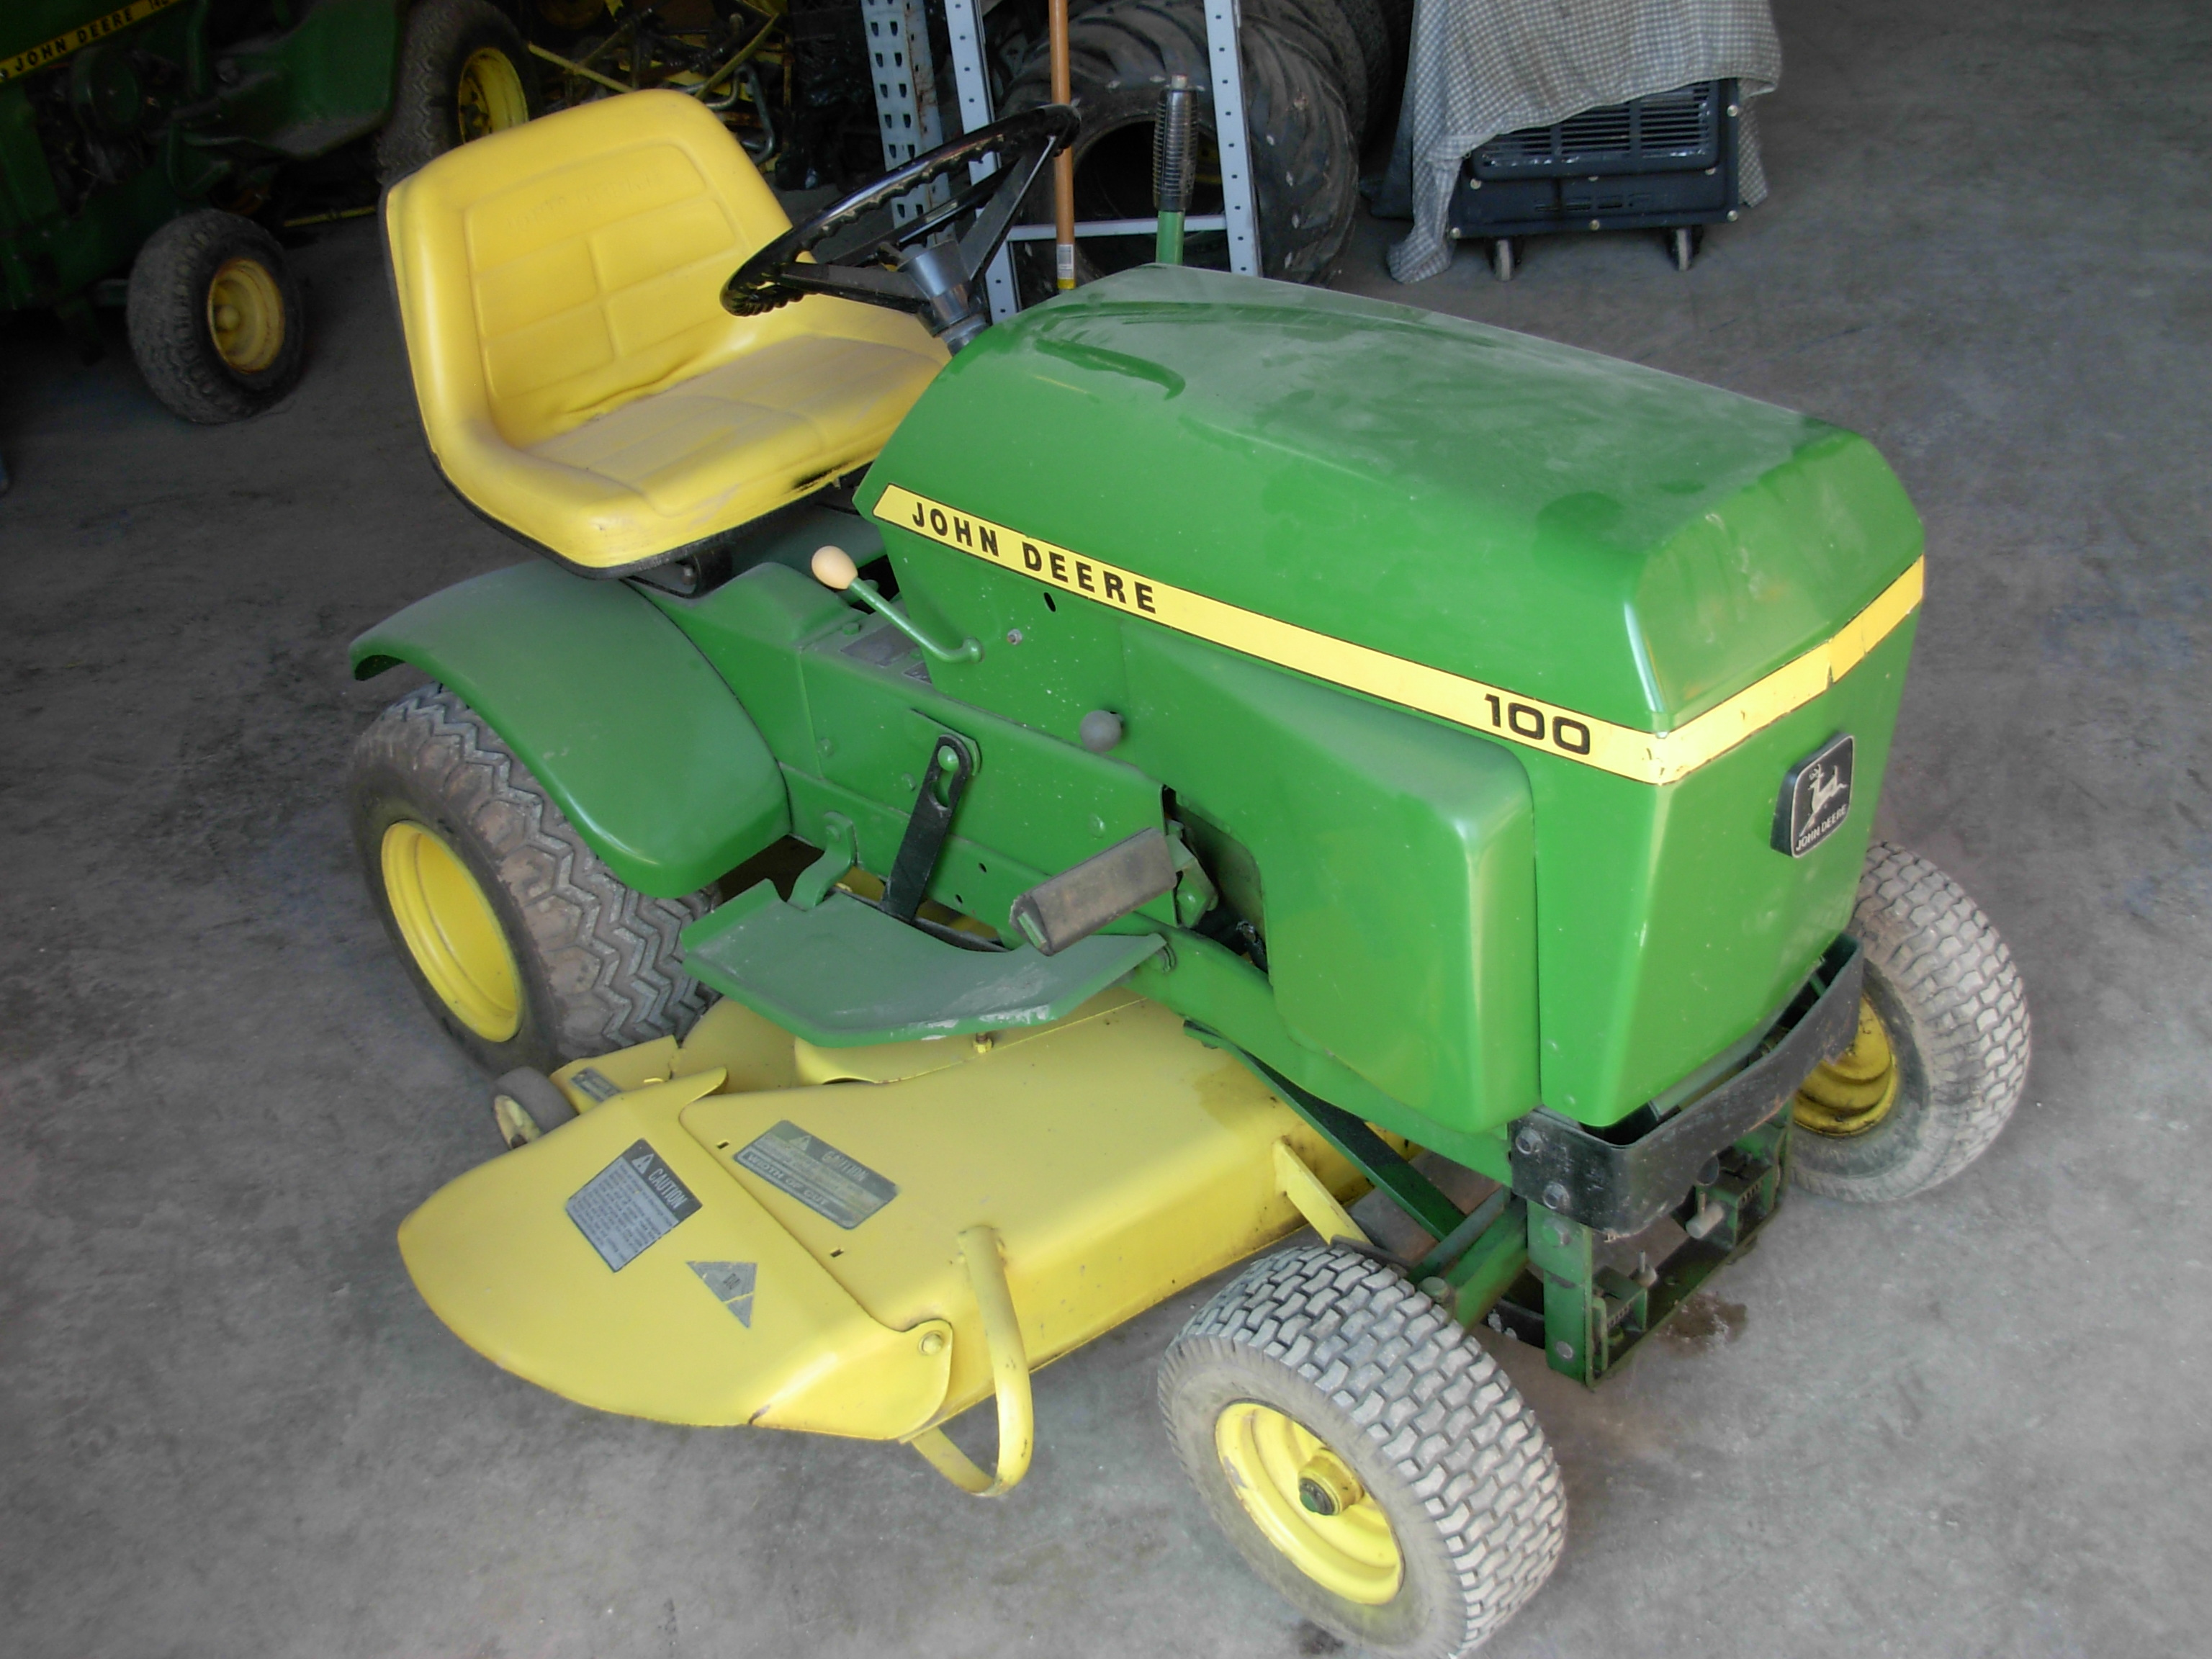 John deere 140 garden tractor parts car interior design for Garden machinery for sale